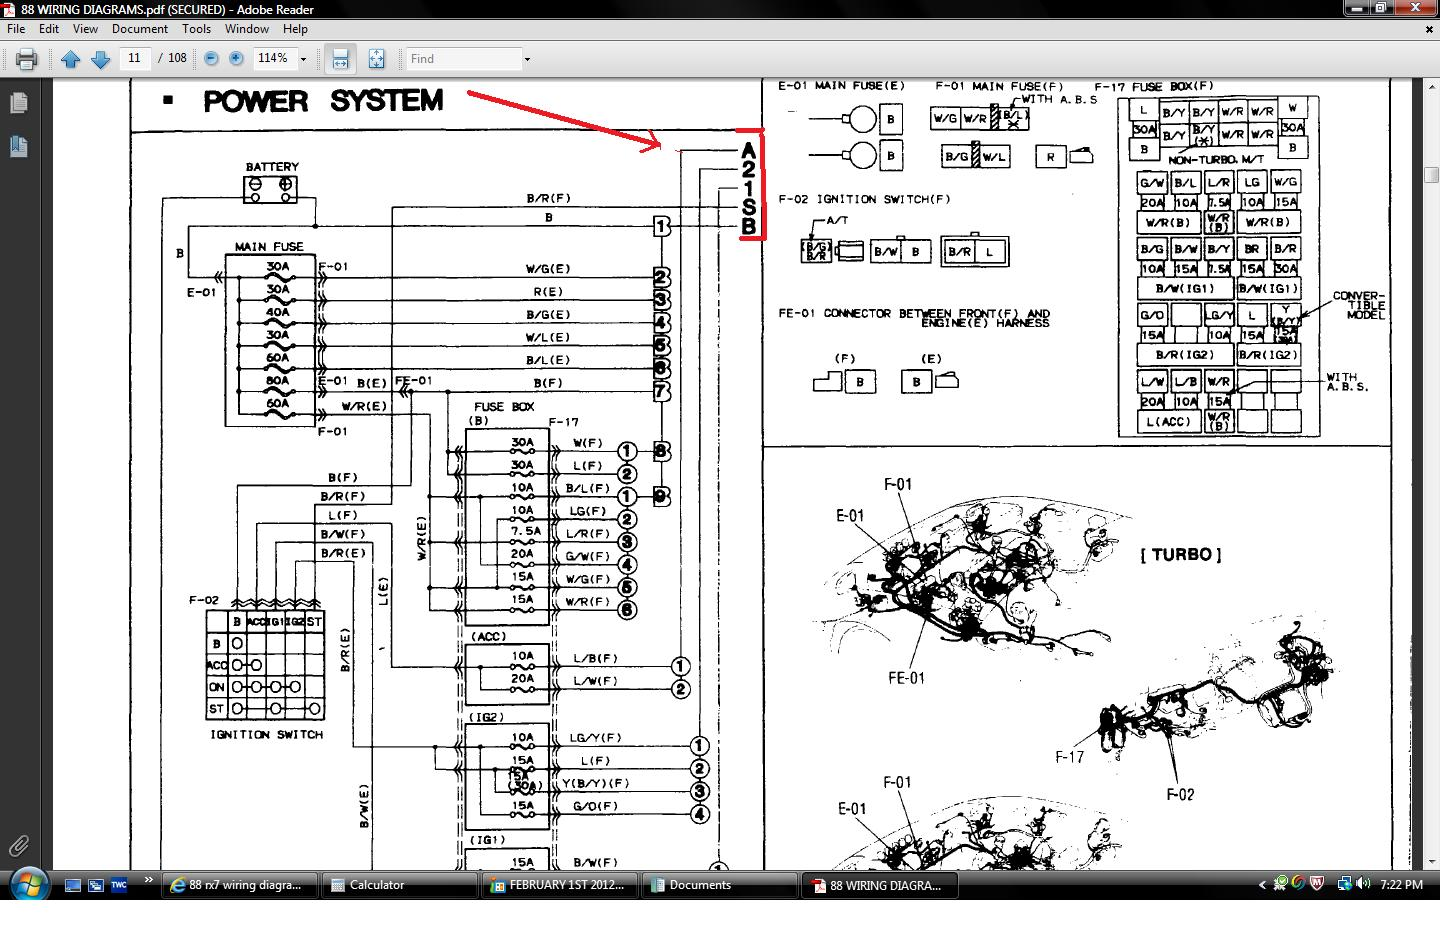 microtech lt10s wiring diagram    microtech lt10s wiring diagram        microtech lt10s wiring diagram